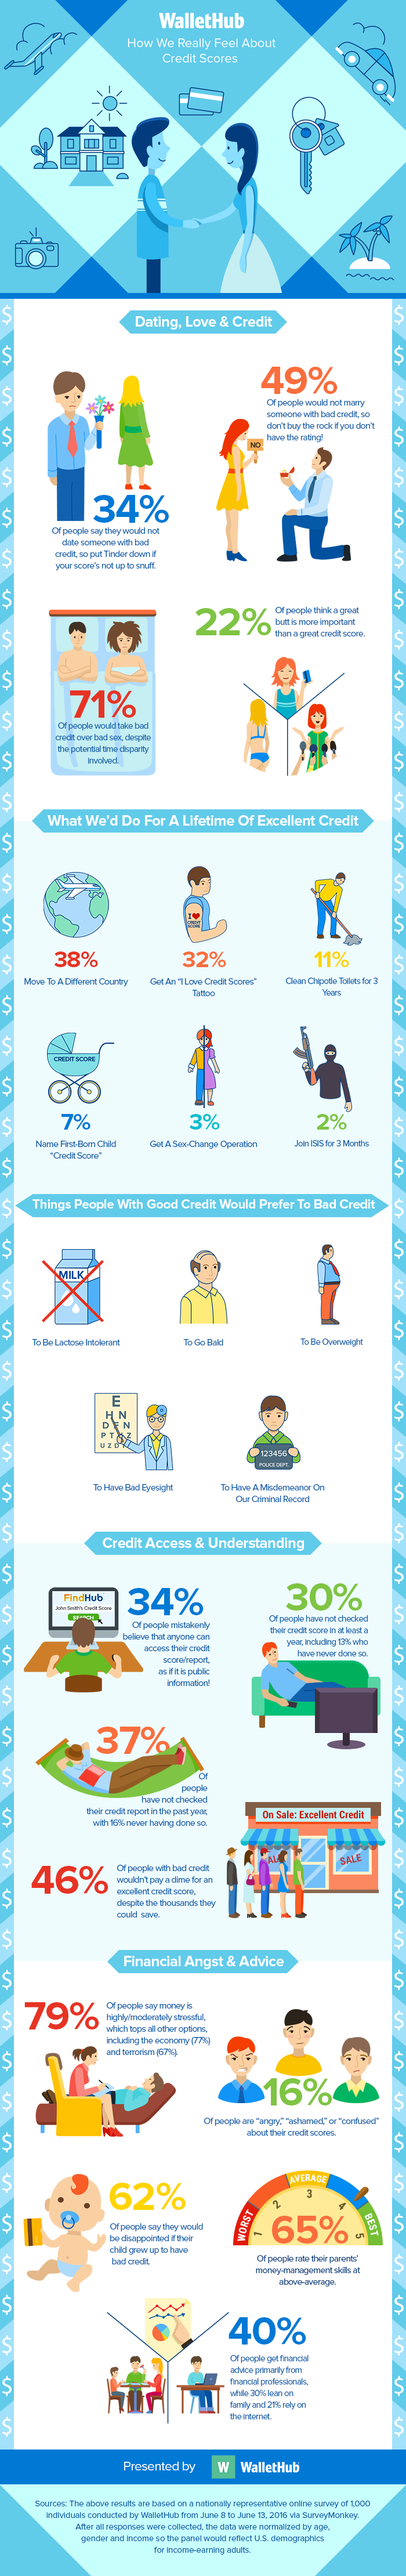 Credit-Score-Infographic-v7